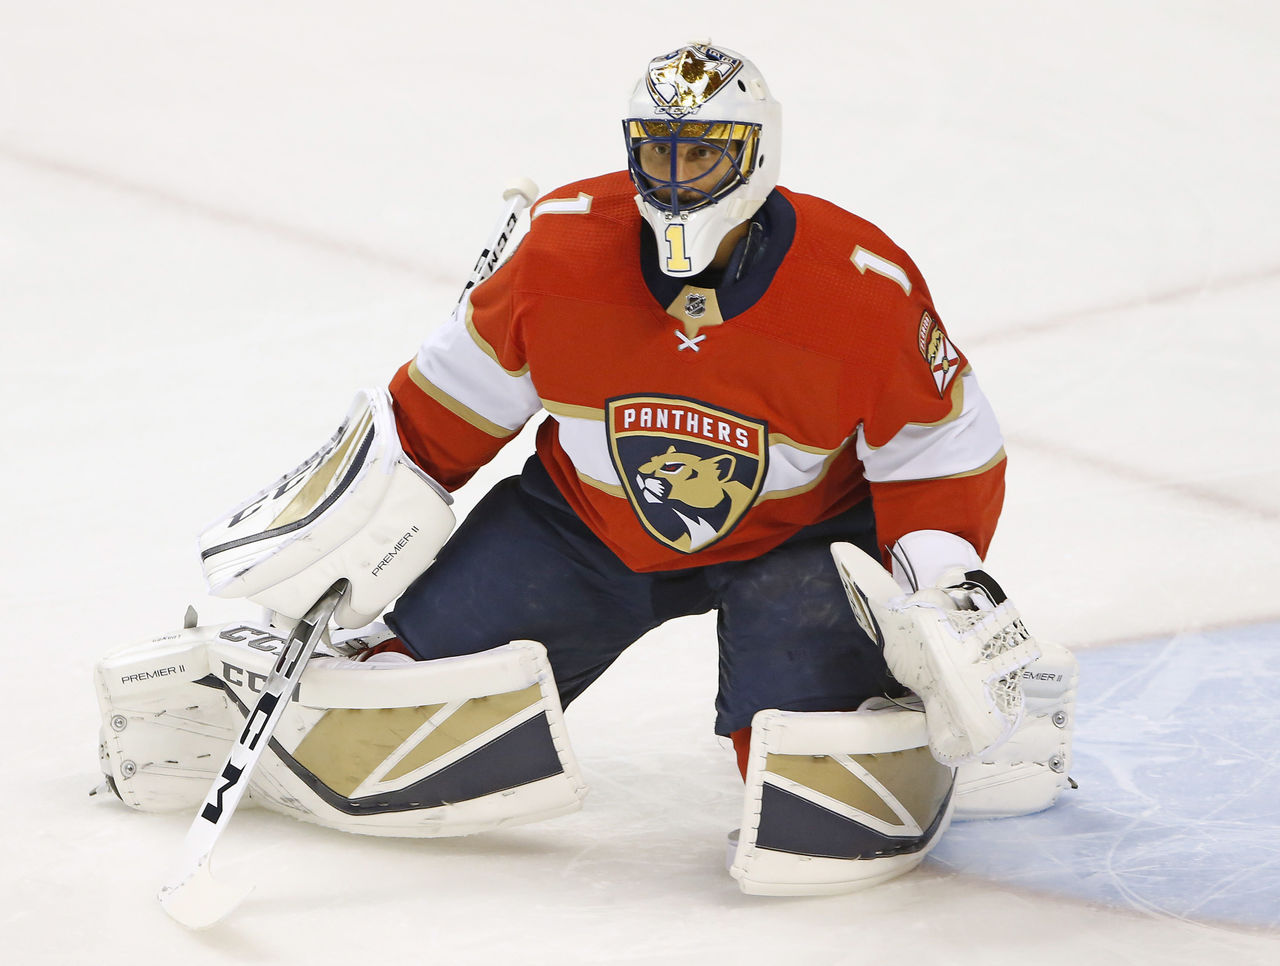 Cropped 2017 10 13t002652z 375735198 nocid rtrmadp 3 nhl st louis blues at florida panthers